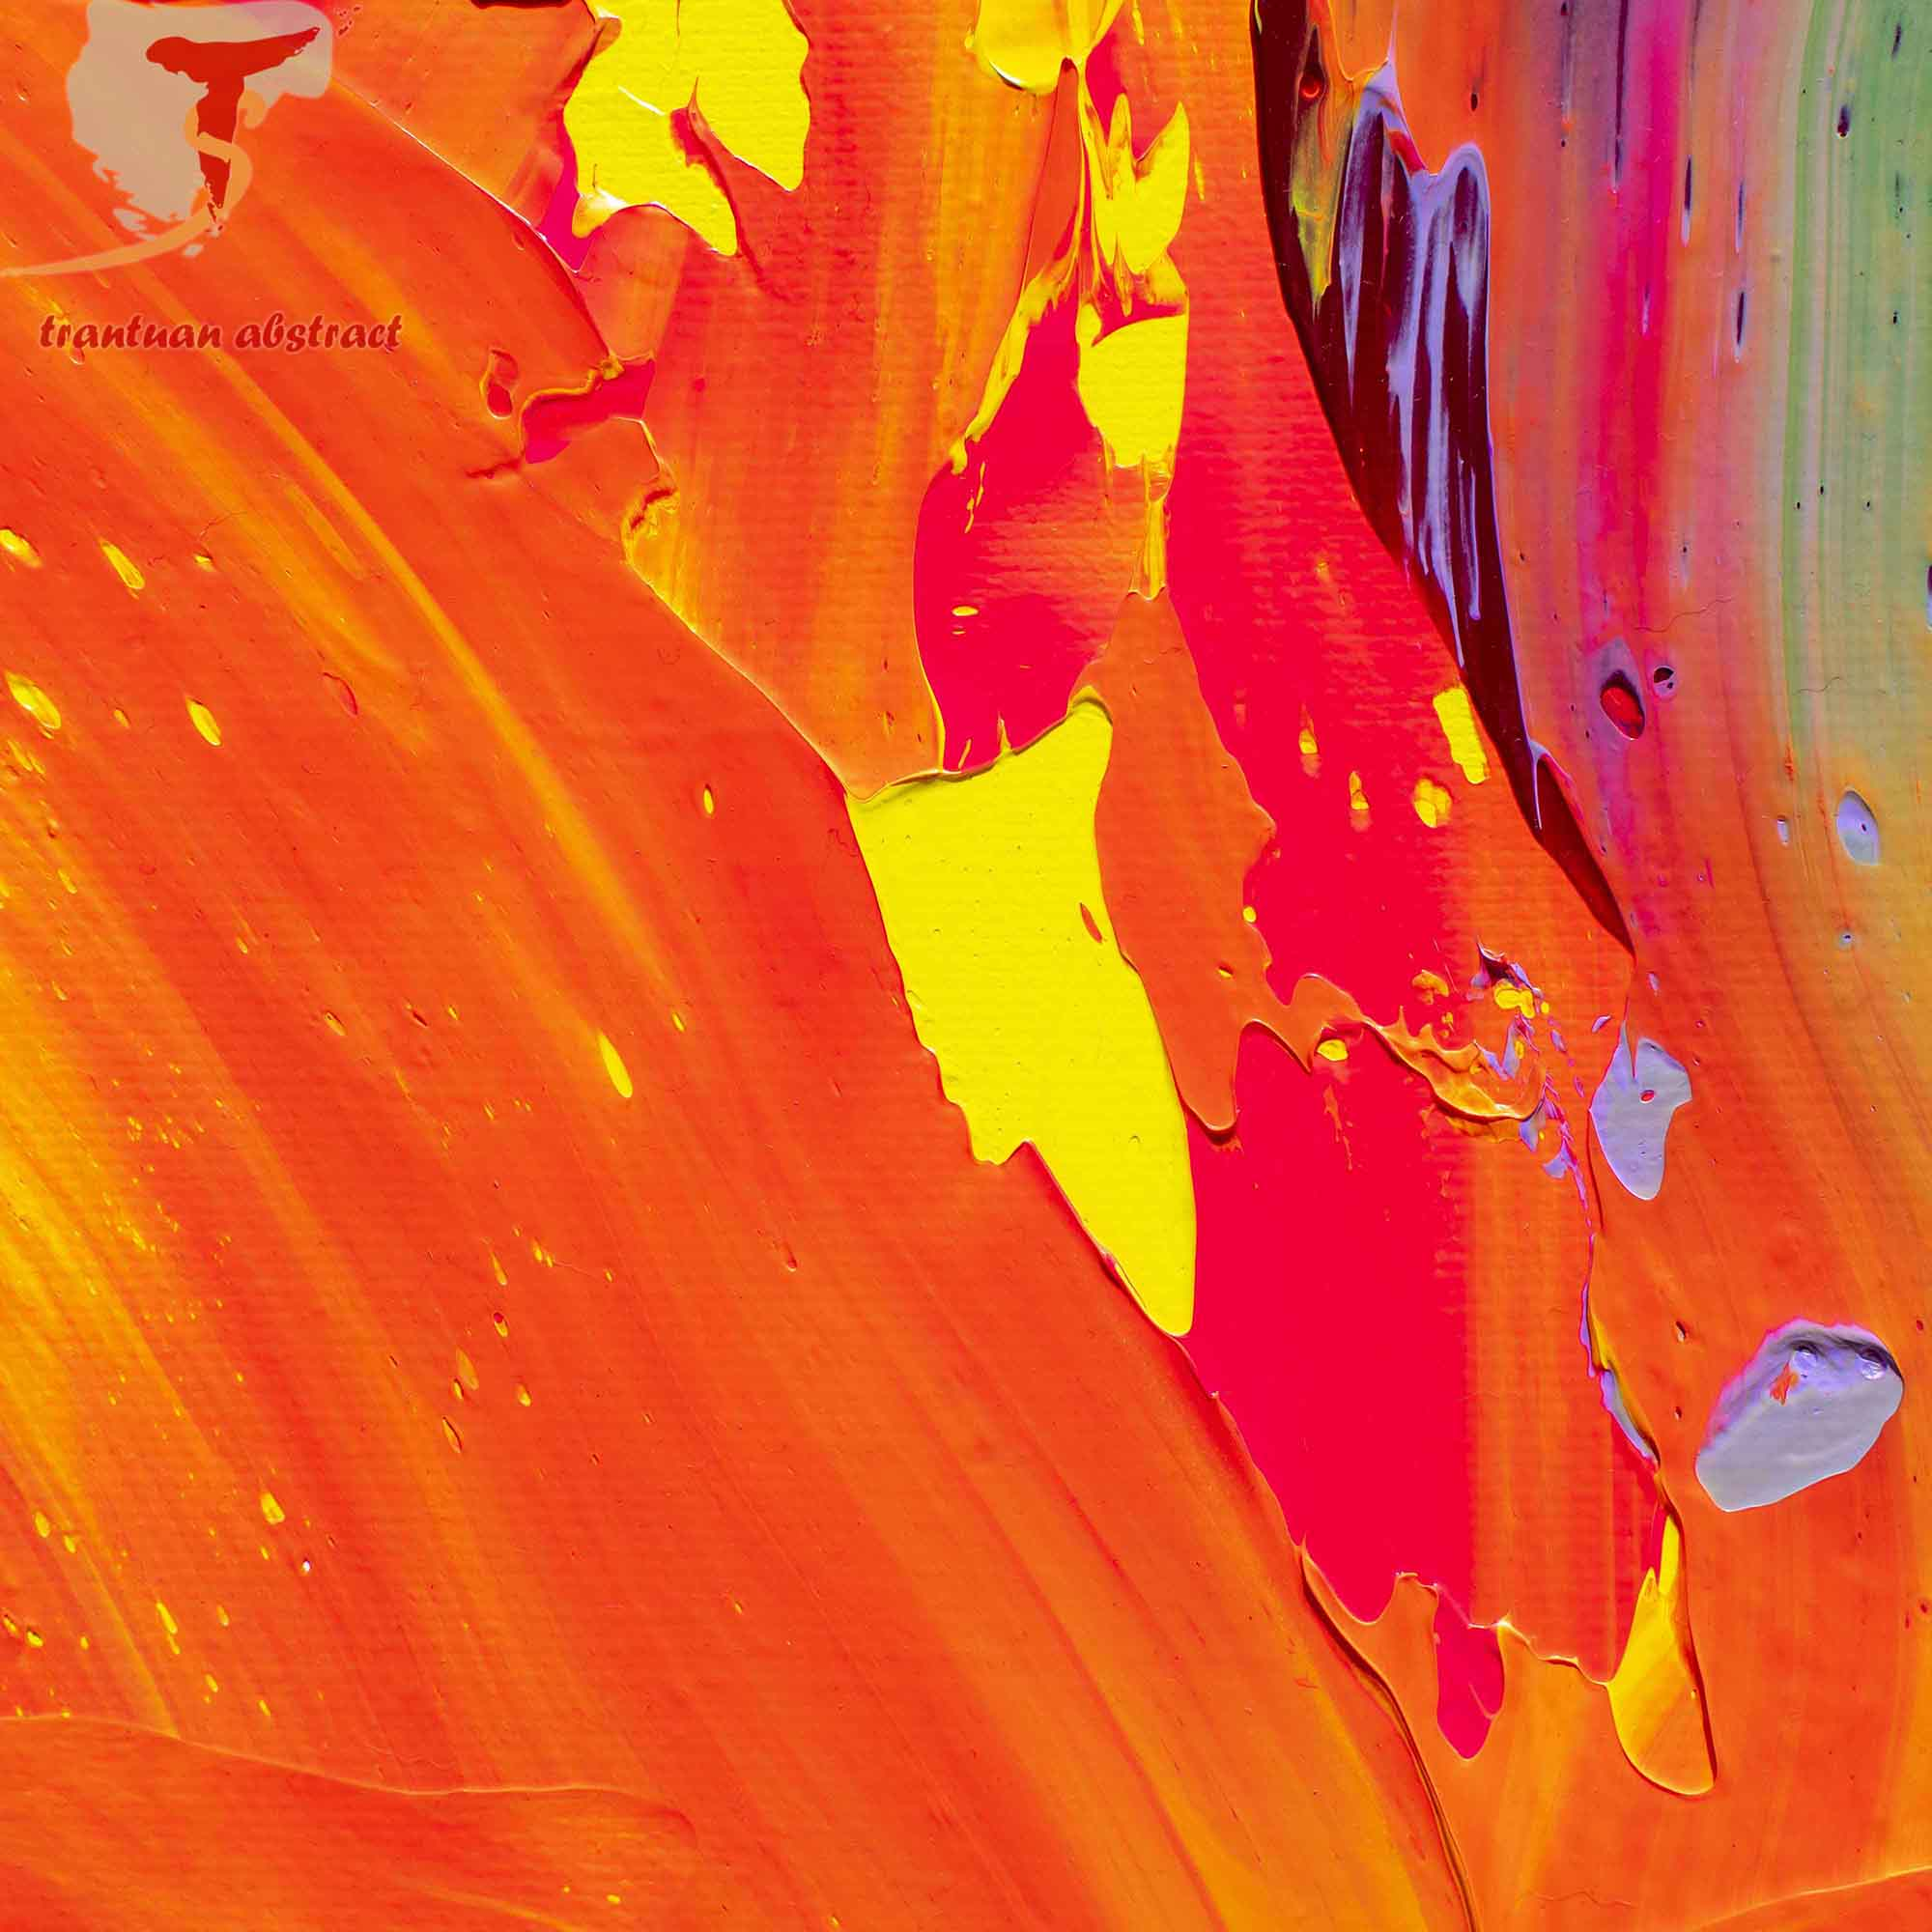 Tran Tuan Abstract Warm Wind 2021 135 x 80 x 5 cm Acrylic on Canvas Painting Detail s (20)